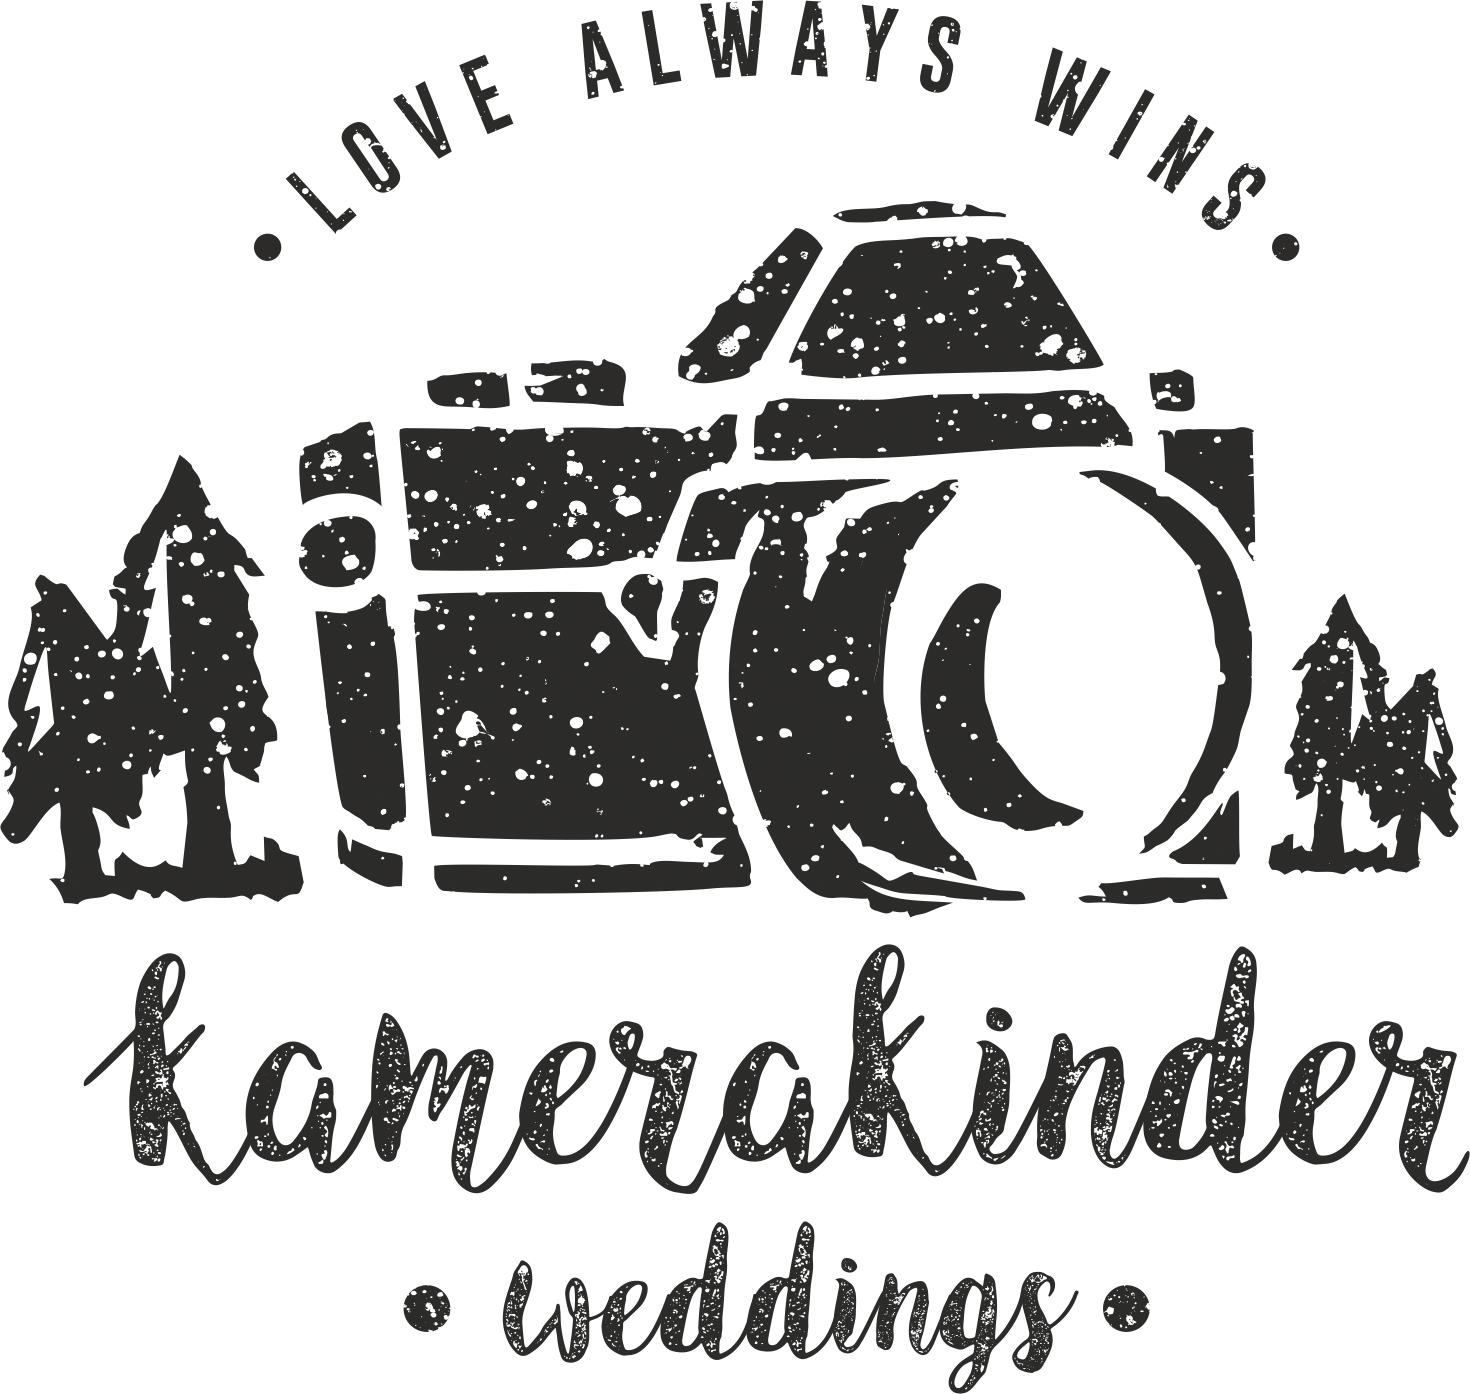 Kamerakinder Weddings